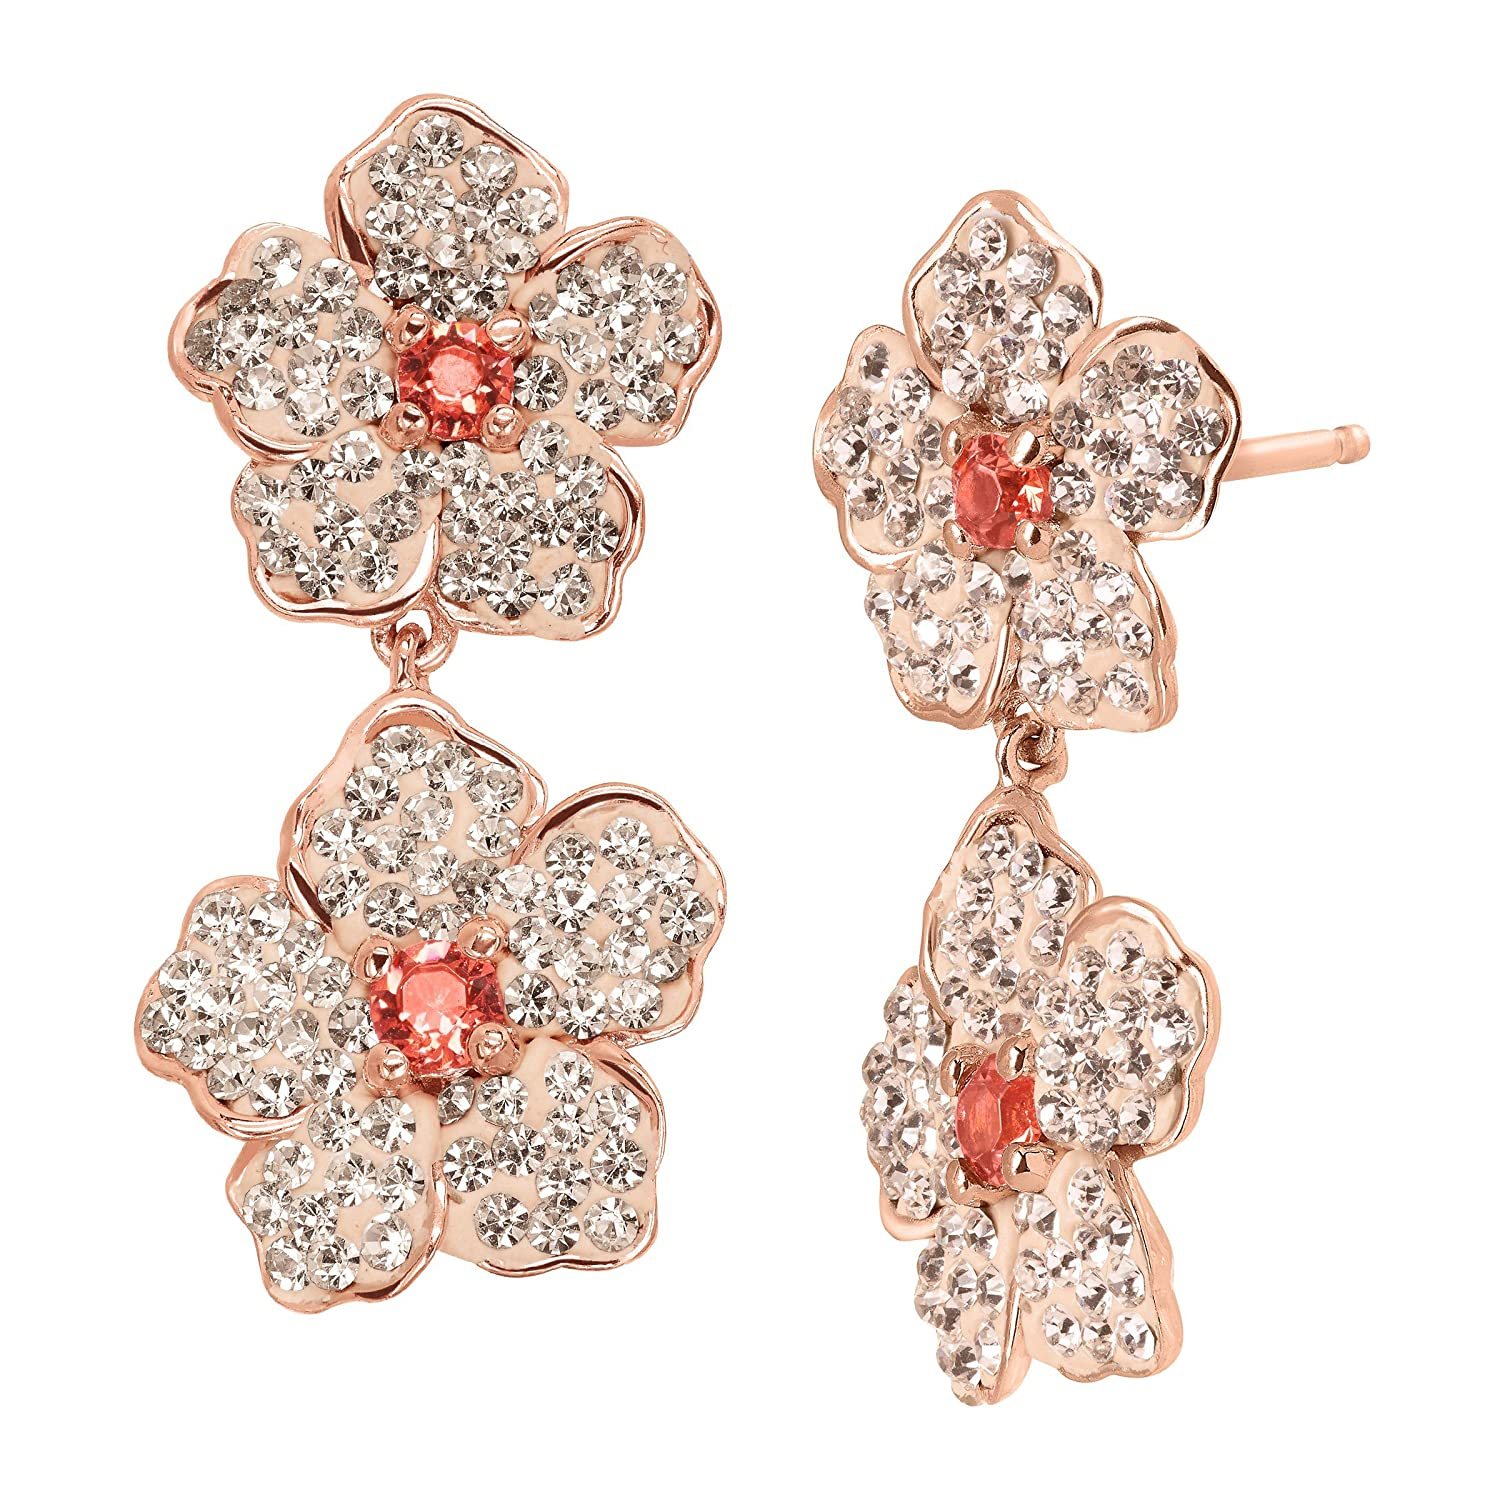 9d96fb031 Amazon.com: Crystaluxe Double Flower Drop Earrings with Pink Swarovski  Crystals in 18K Rose Gold-Plated Sterling Silver: Jewelry